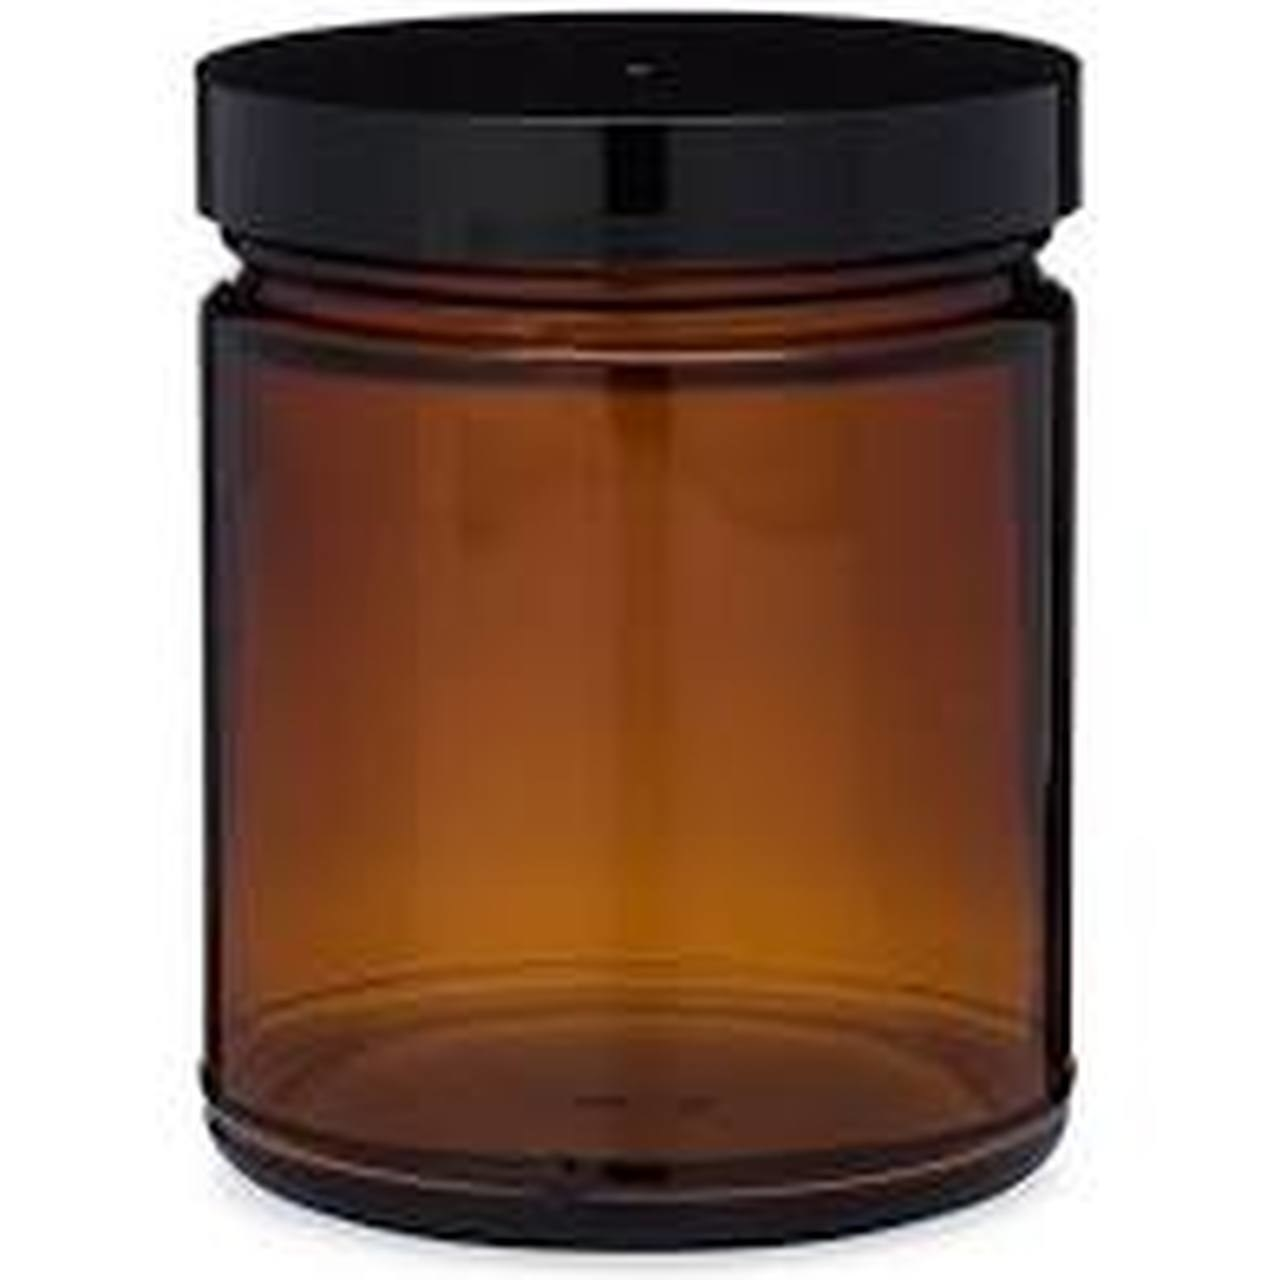 amber glass candle jar